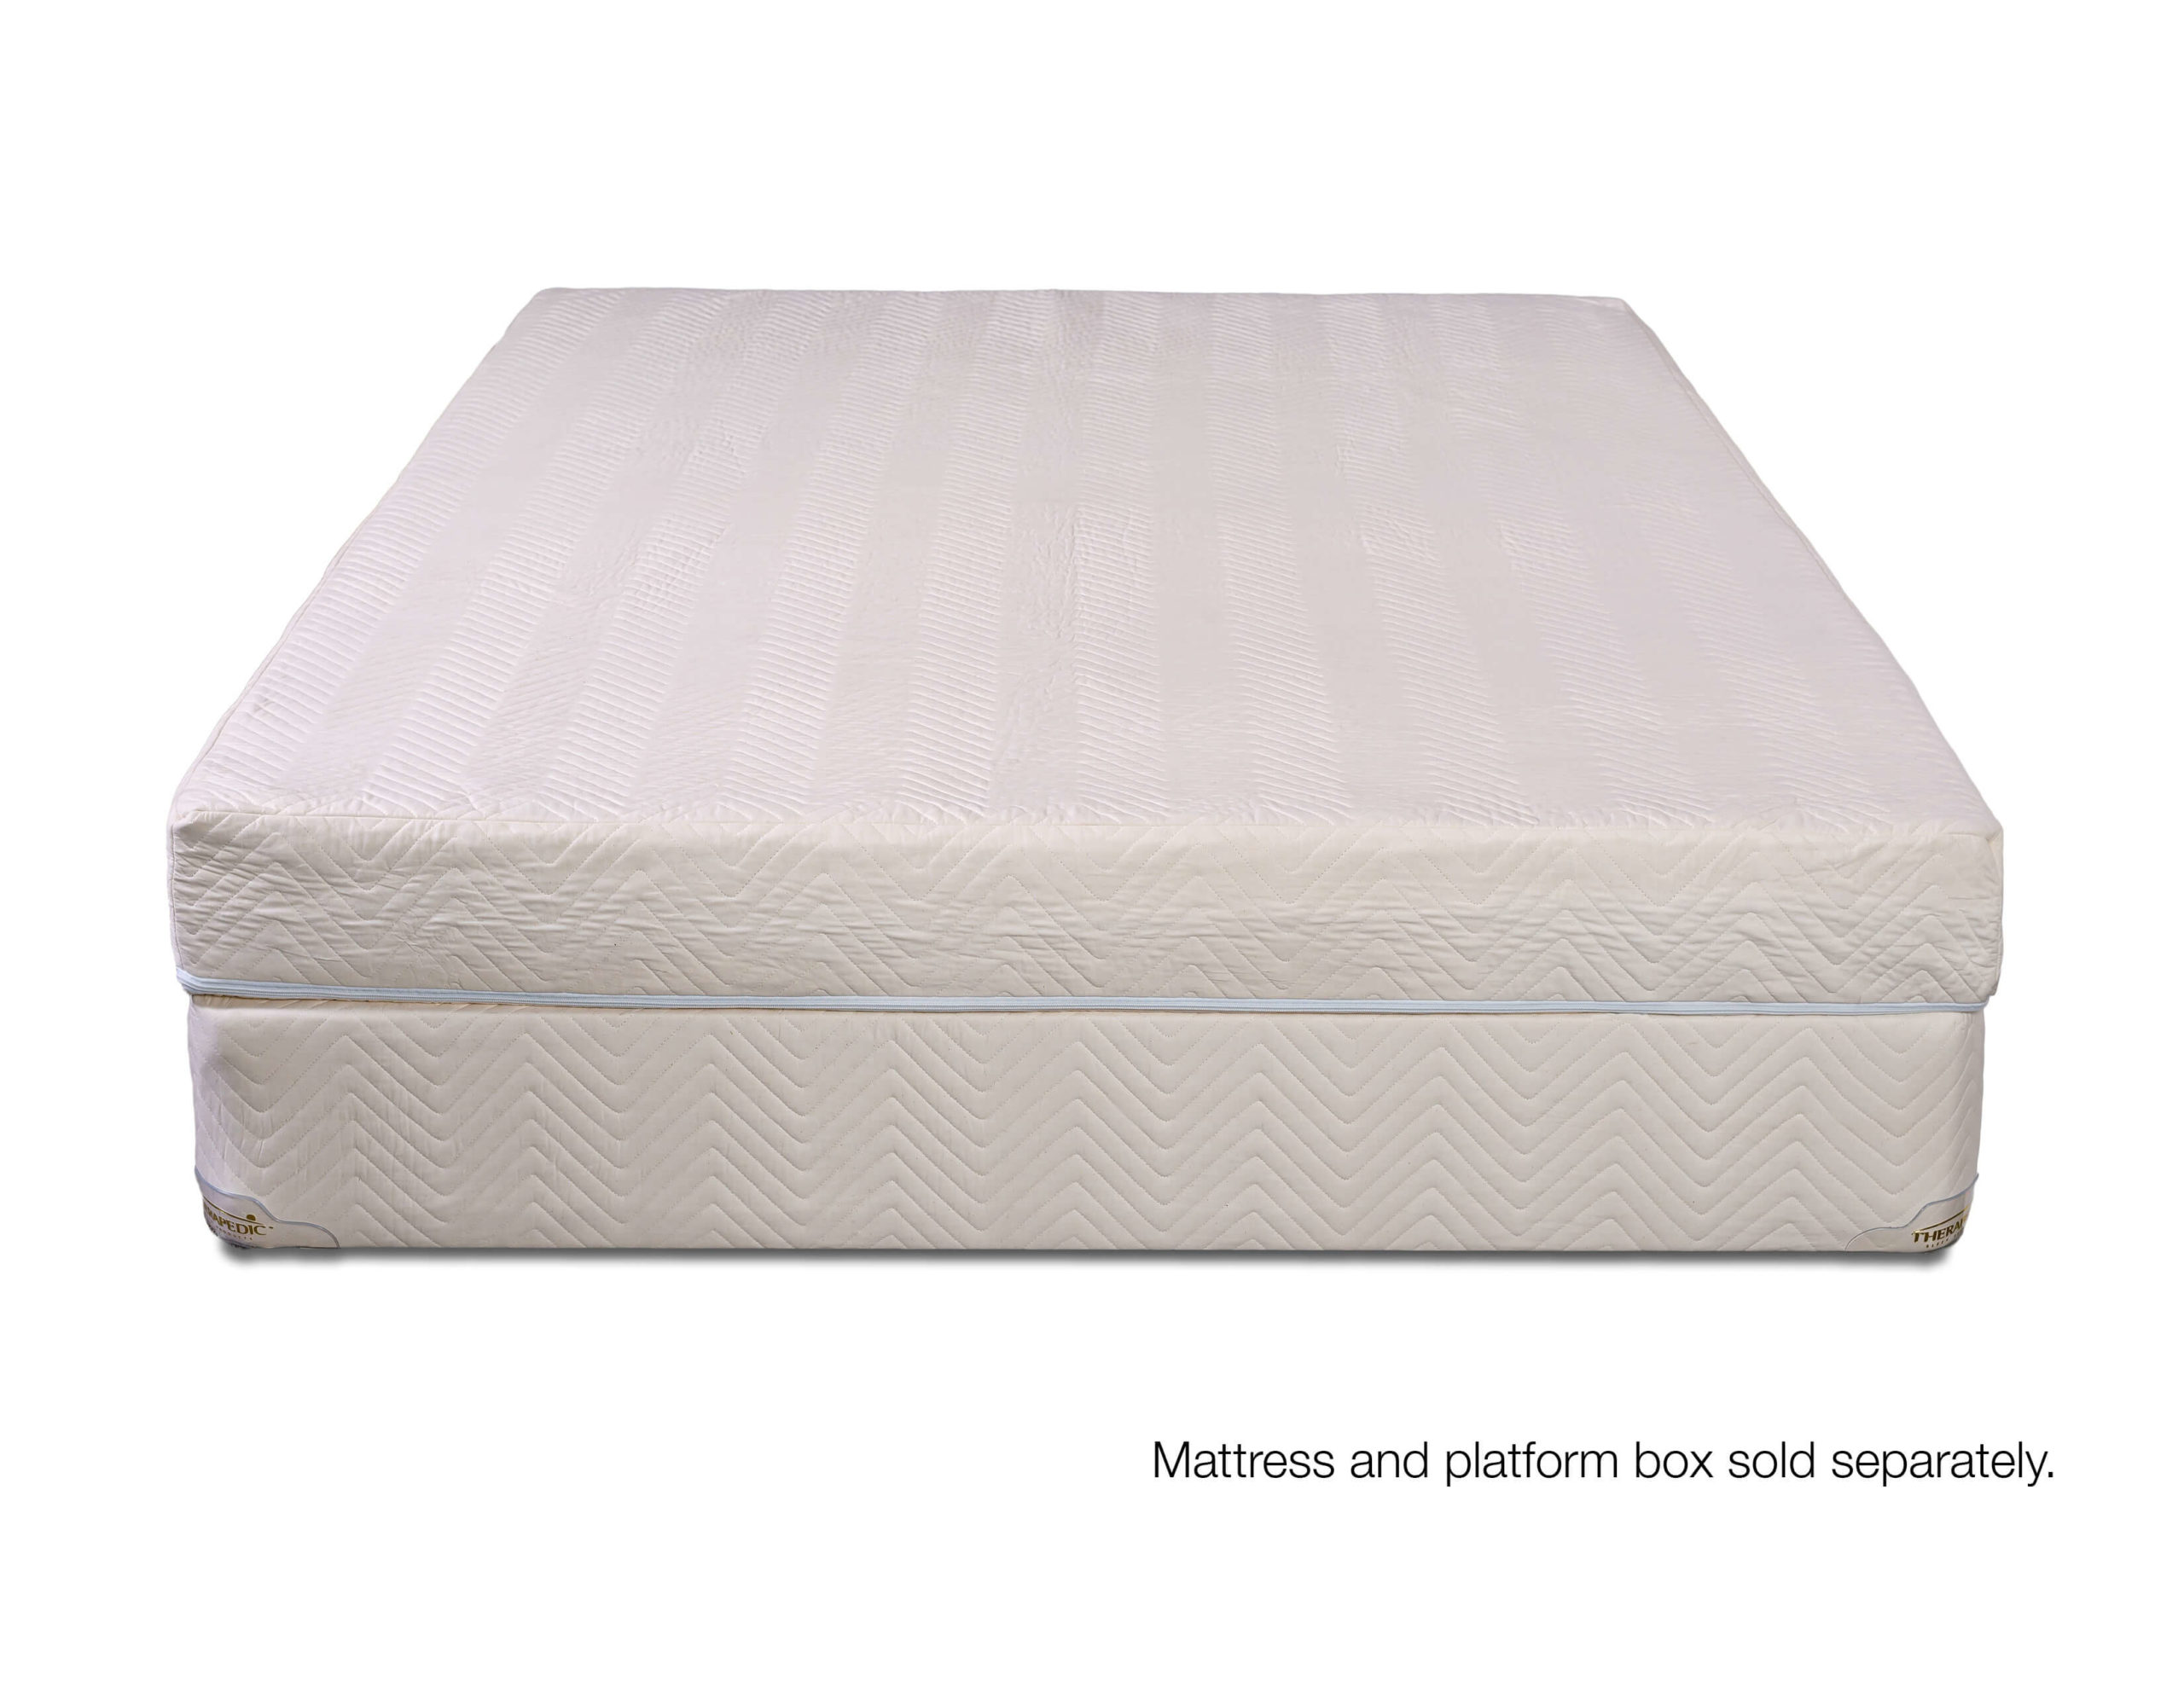 Botanical Latex and Cotton in the Wallingford Latex Mattress